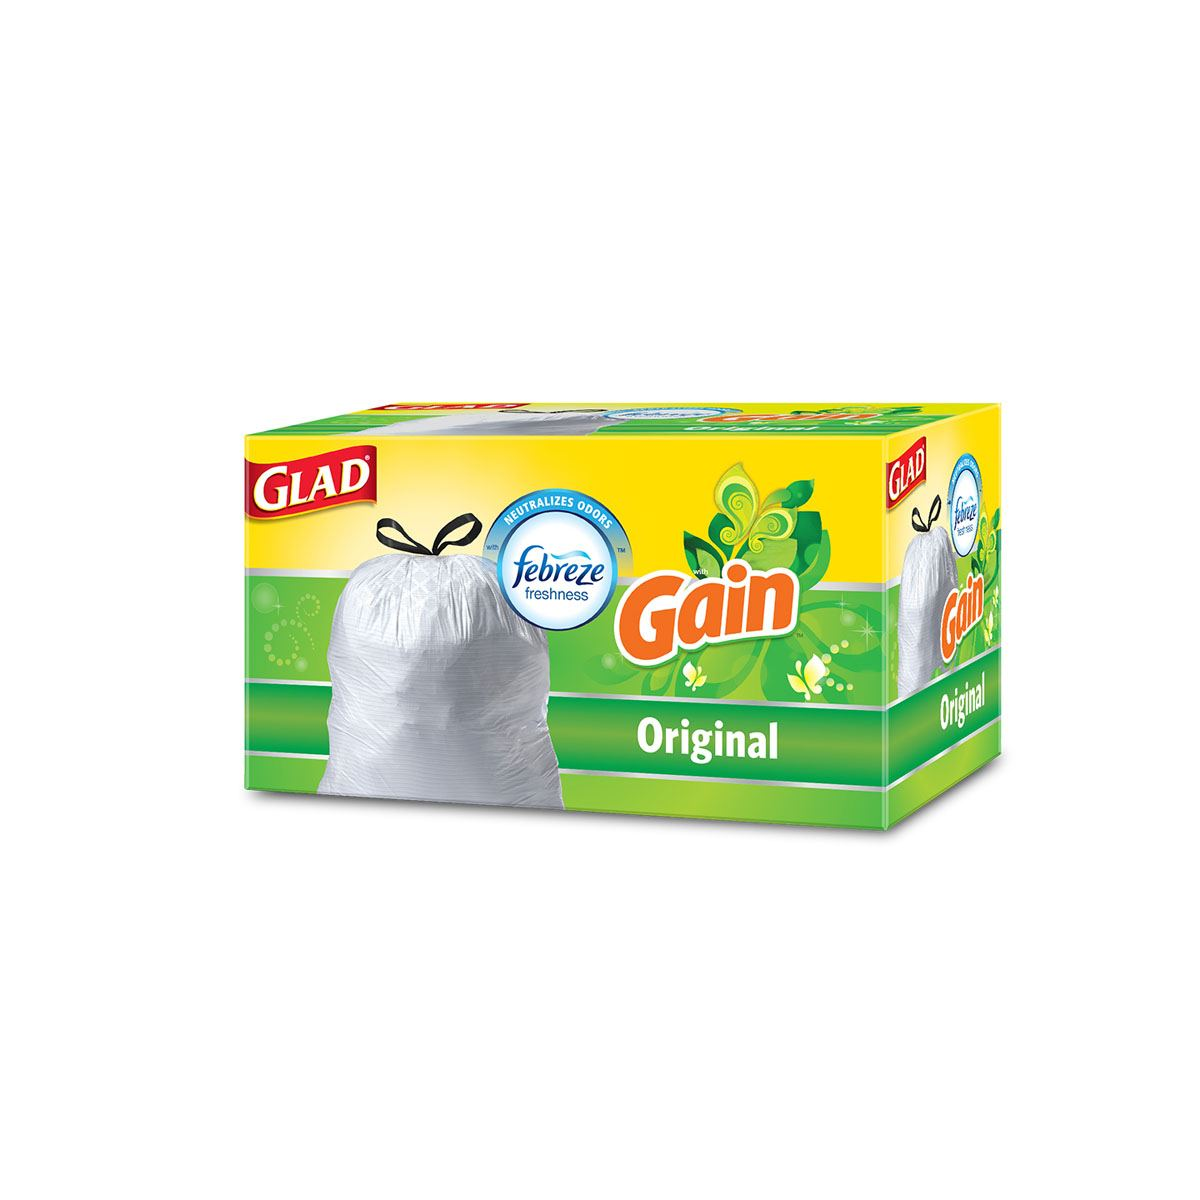 Glad Trash Bags with the scent of Gain Original